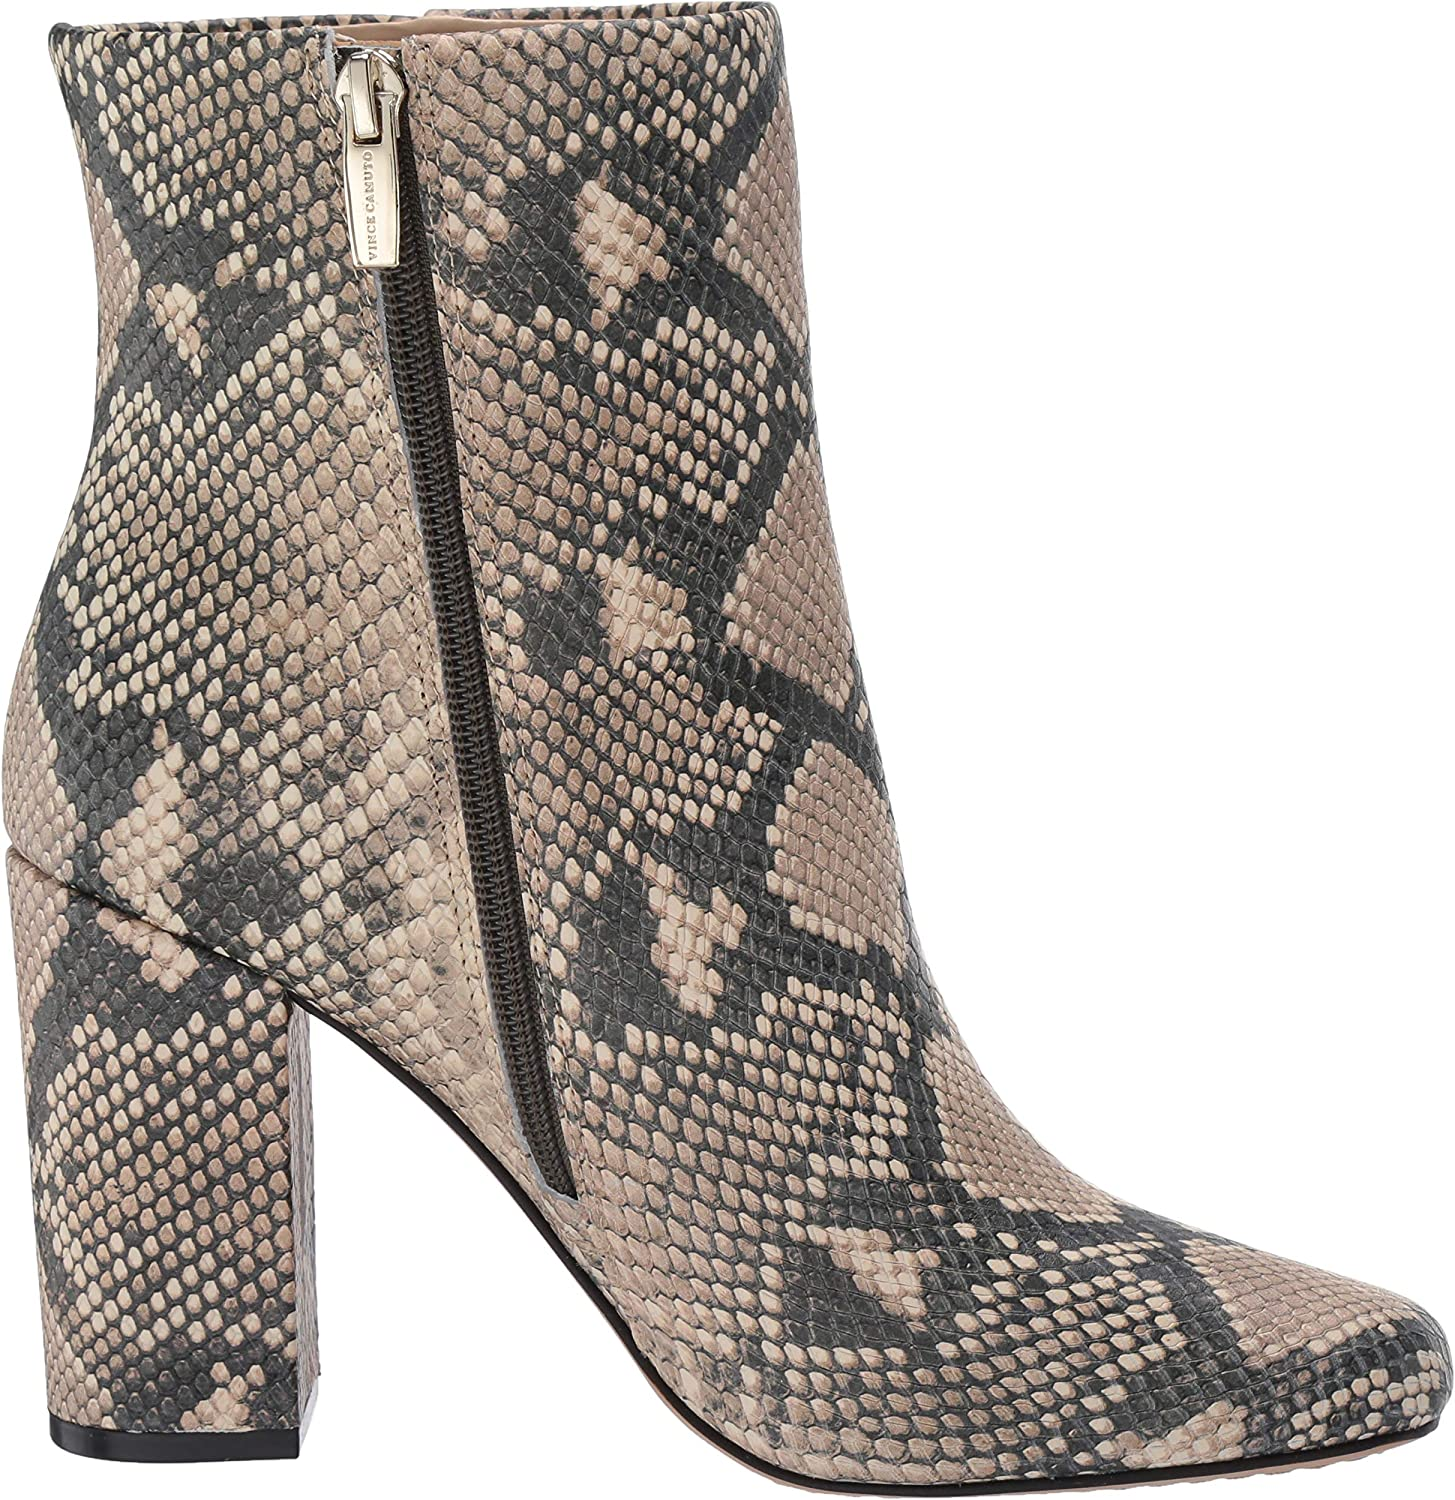 Vince Camuto Women's Dannia Fashion Boot Natural 07